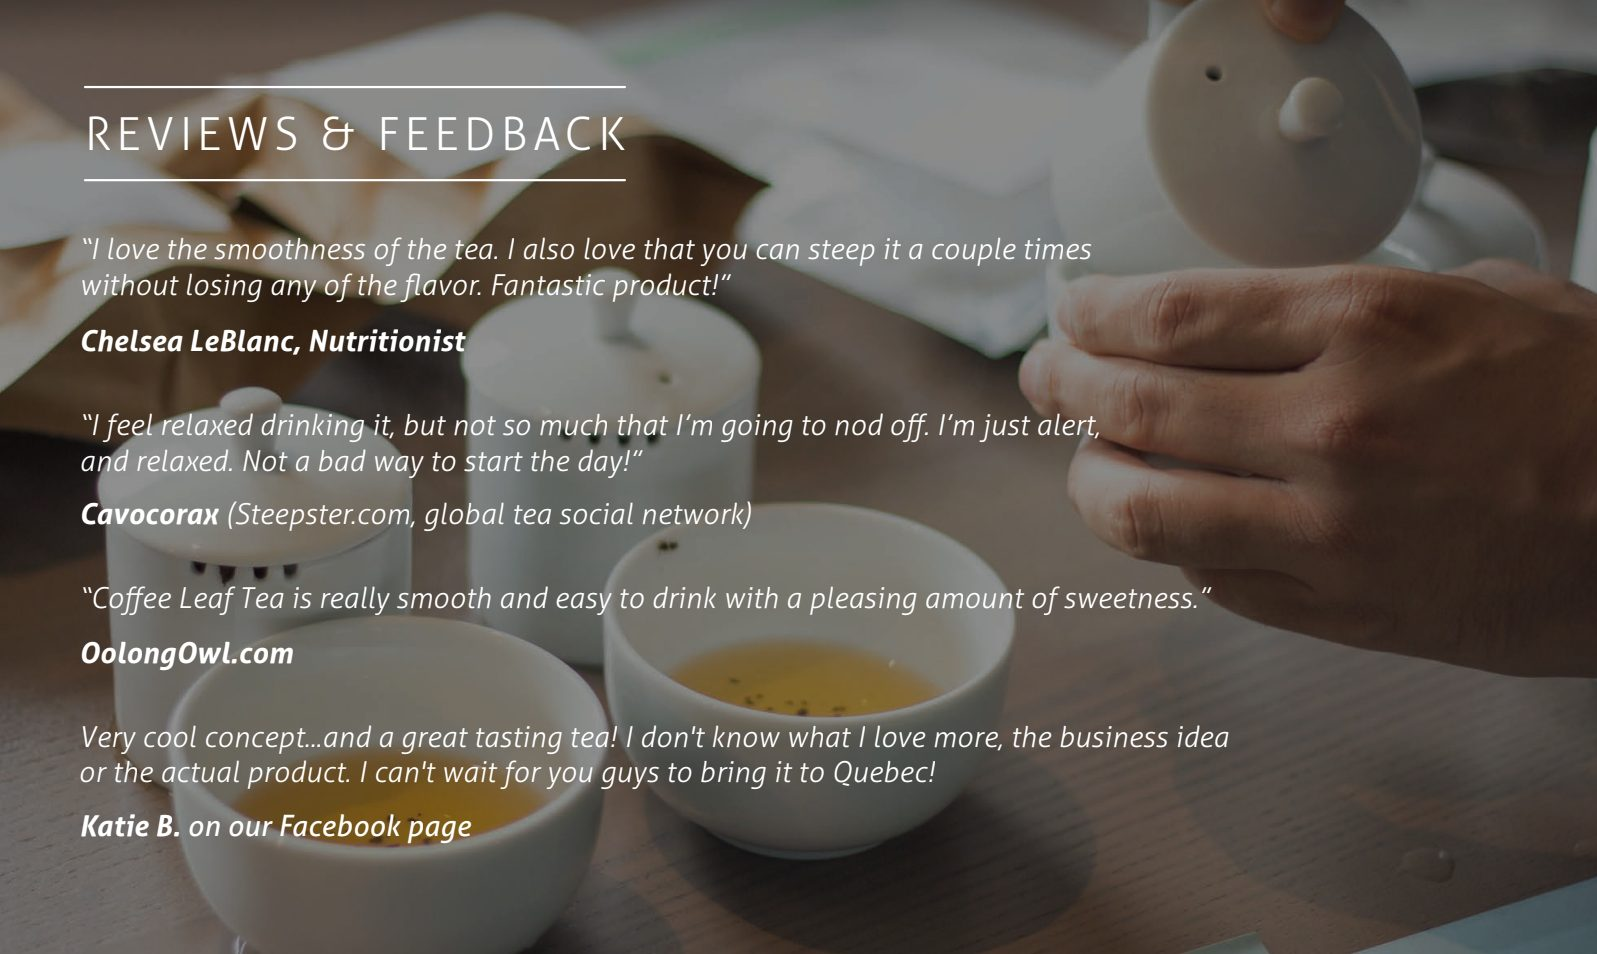 Coffee Leaf Review and Feedback